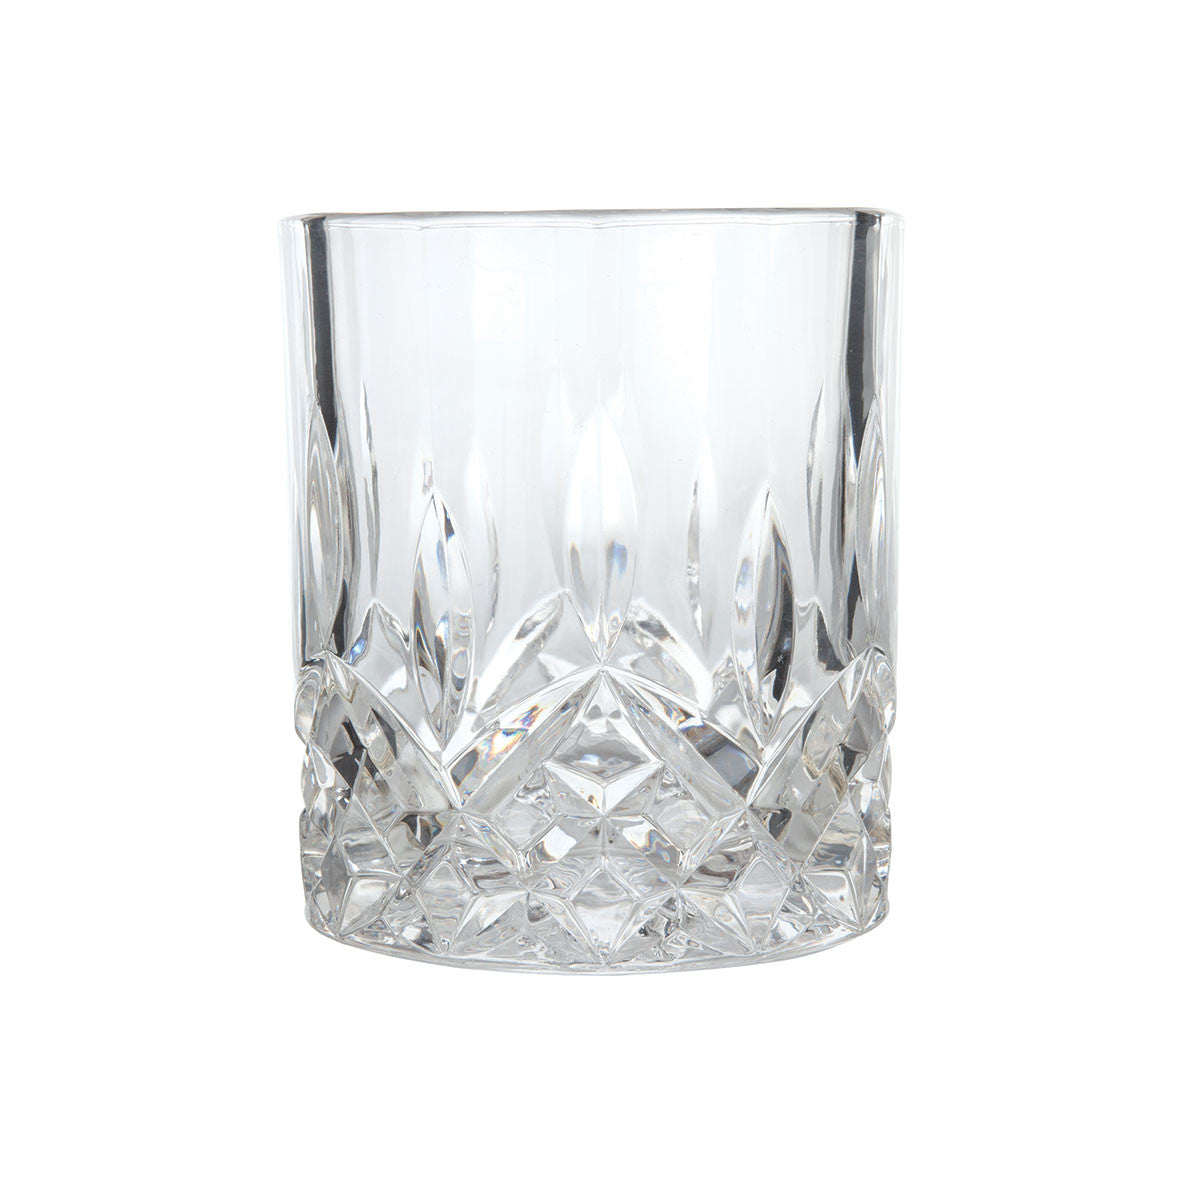 Admiral Crystal Whisky Glasses - Only £19.99 | UBERSTAR